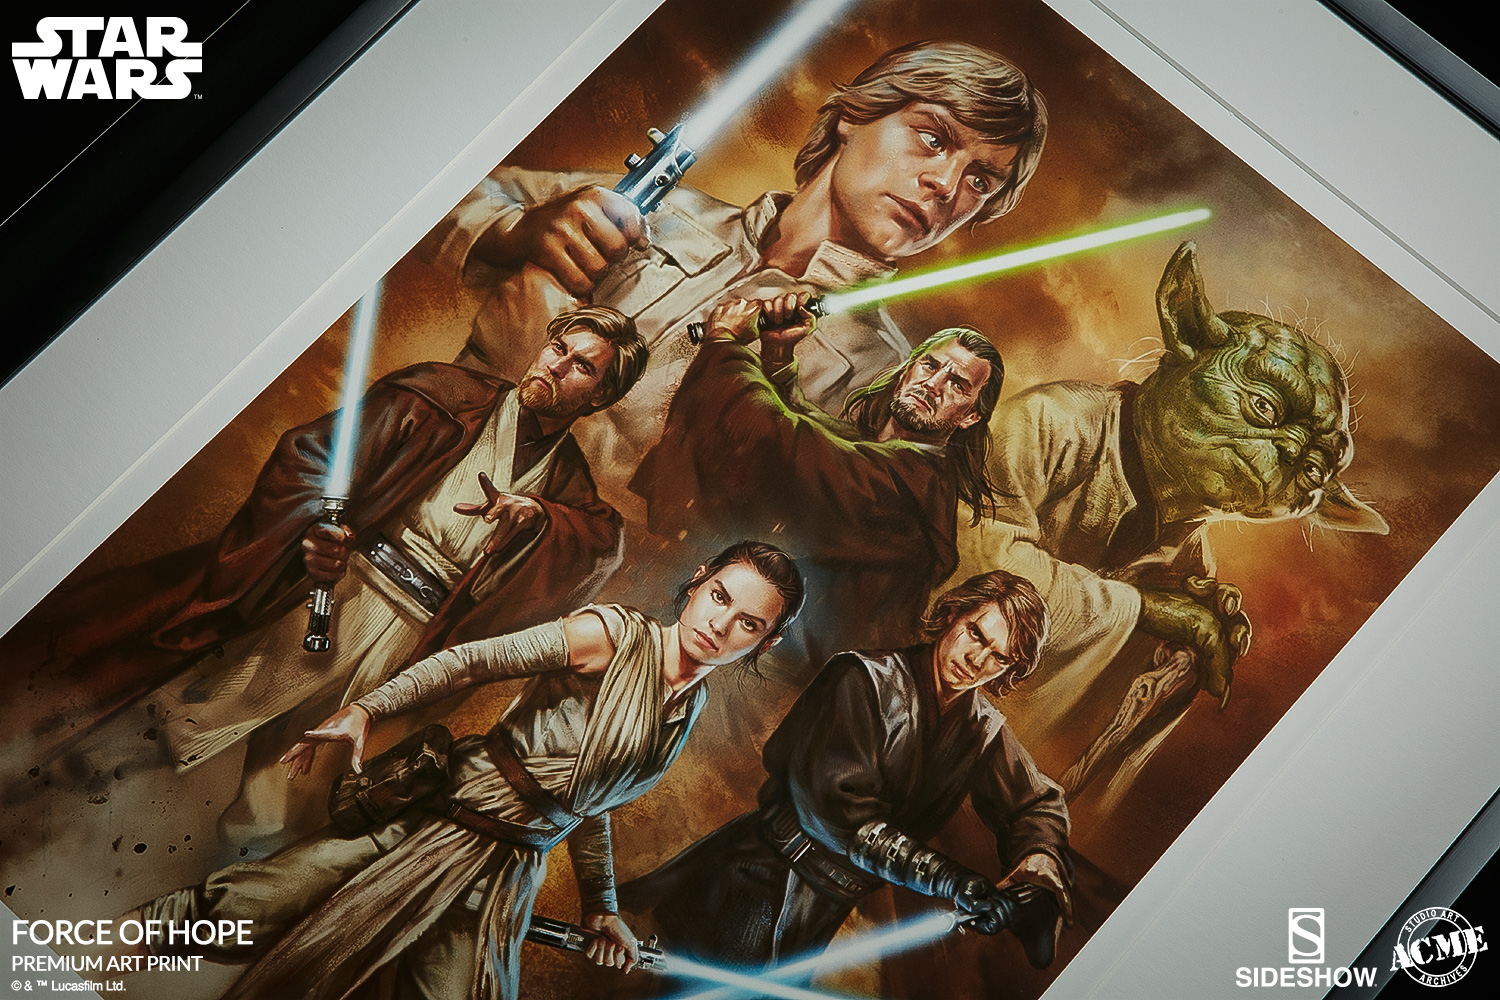 star wars force of hope art print by acme archives